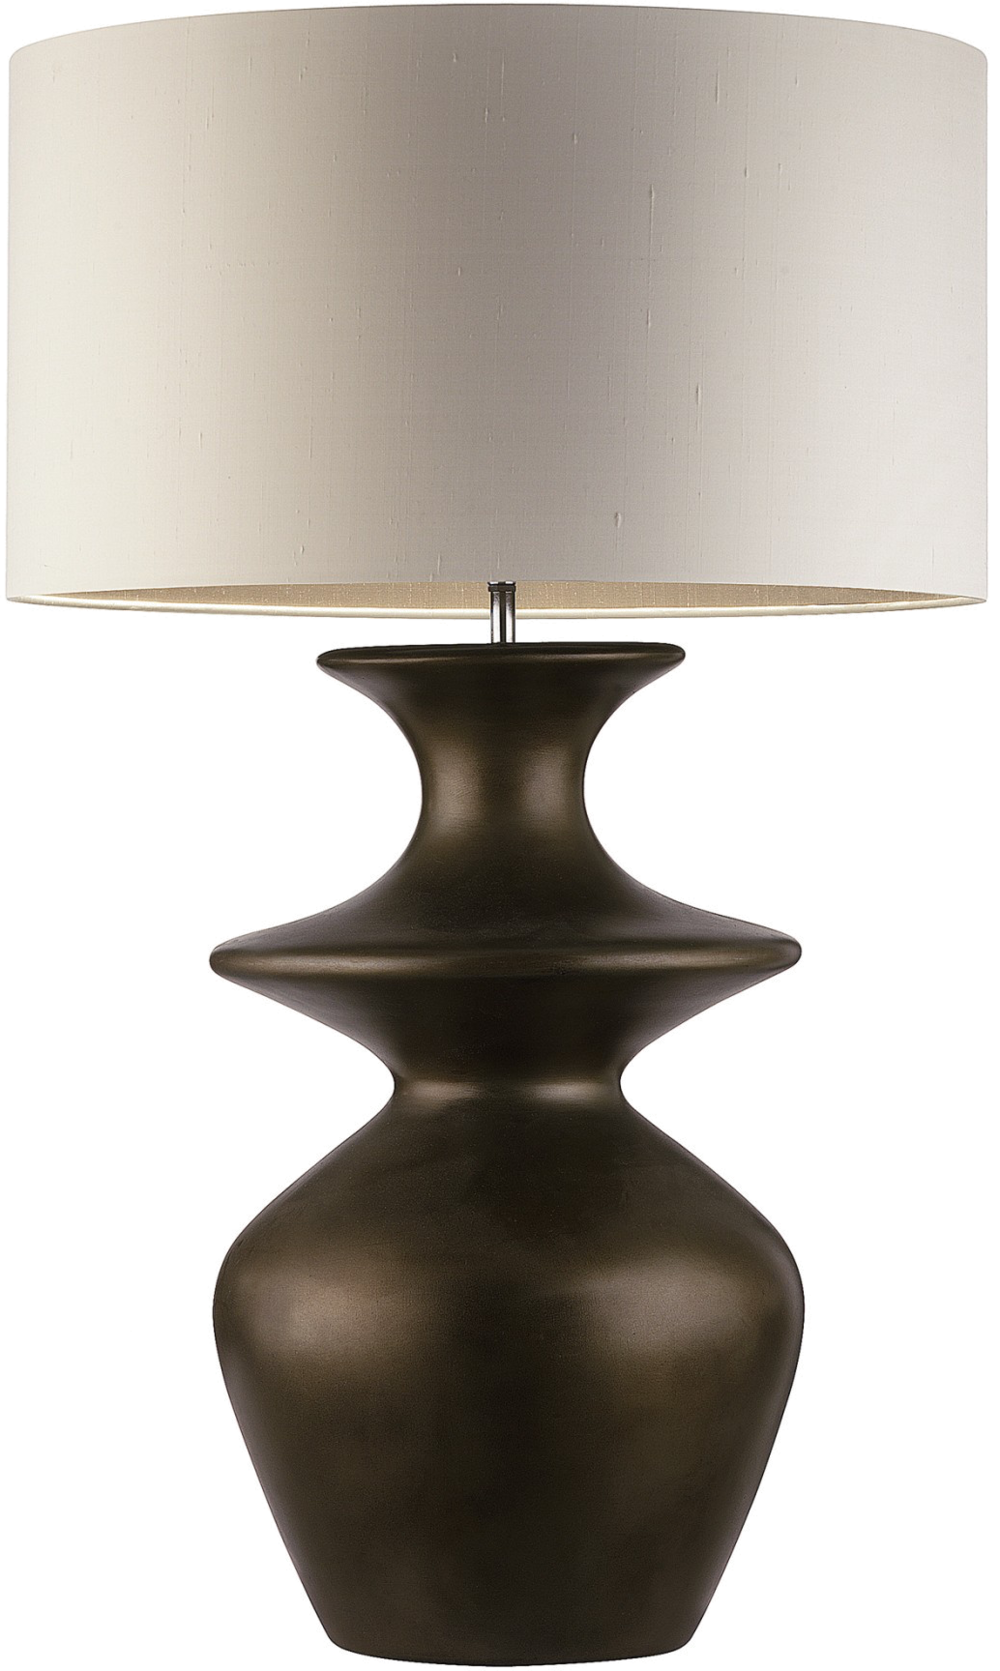 We know brass has been a favorite finish for the past few years, but we are loving bronze more than ever. This table lamp with its substantial size will add a balanced drama, a chic, sleek sexy and warm appeal to any interior.